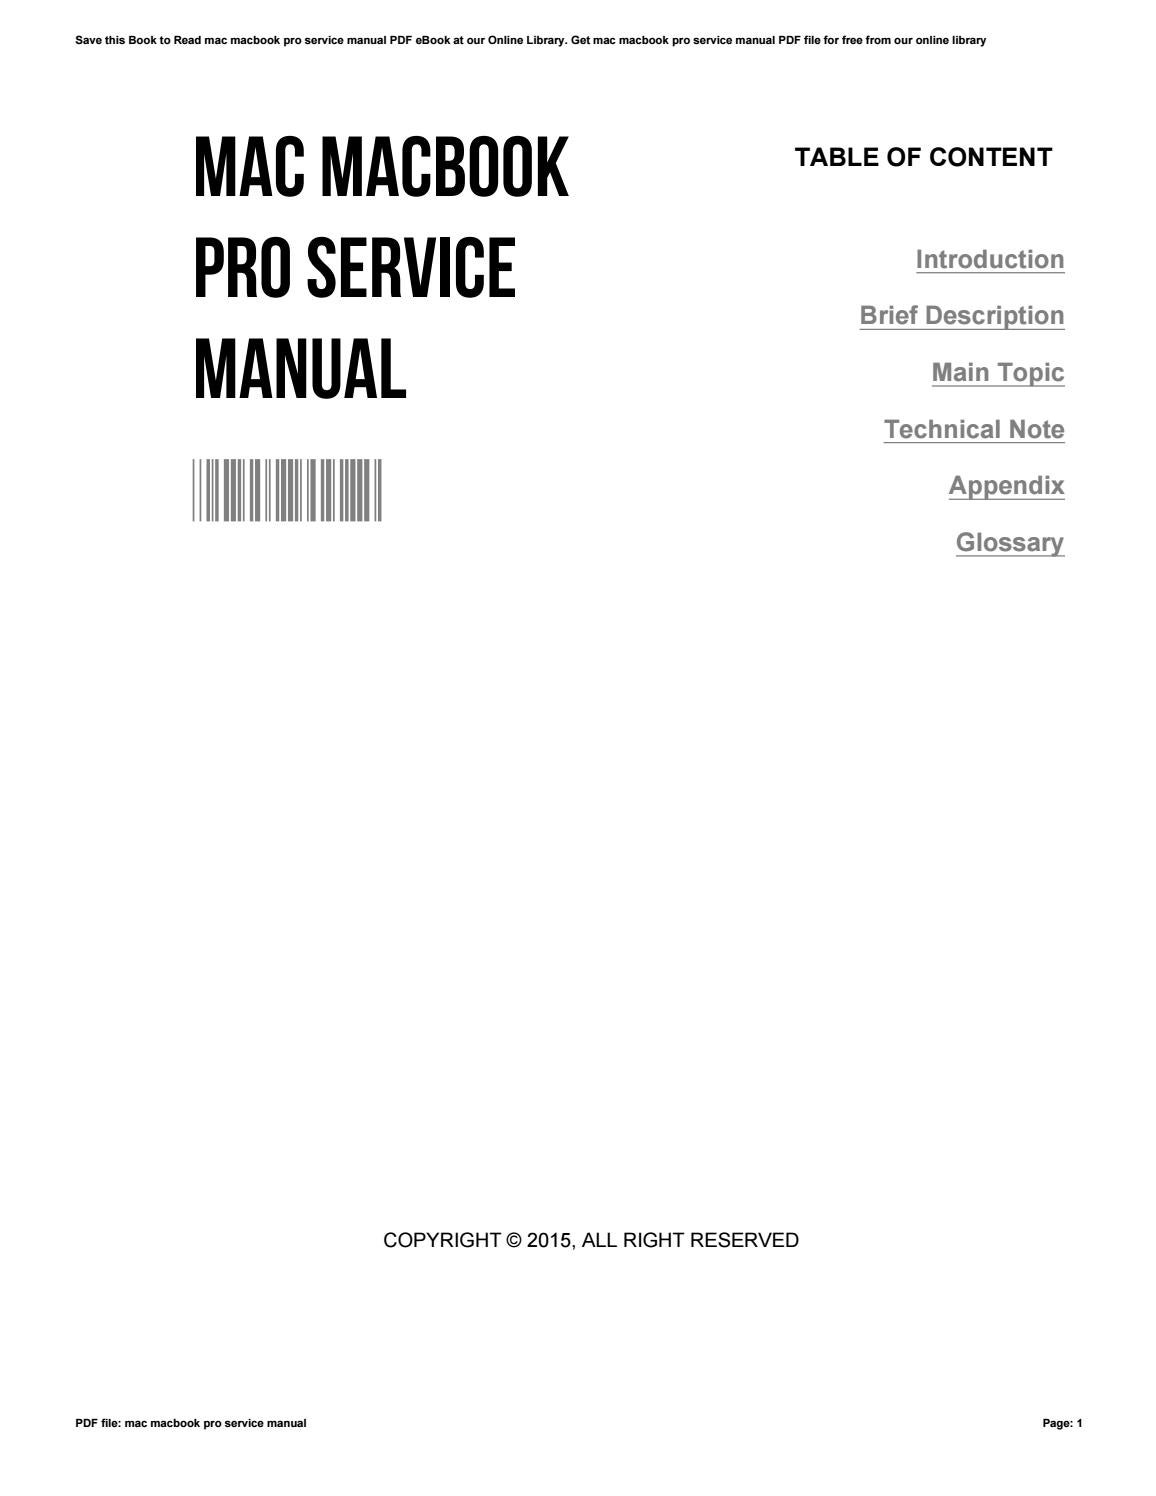 mac macbook pro service manual by denisearmstead3145 issuu rh issuu com apple macbook pro service manual Every Mac MacBook Pro